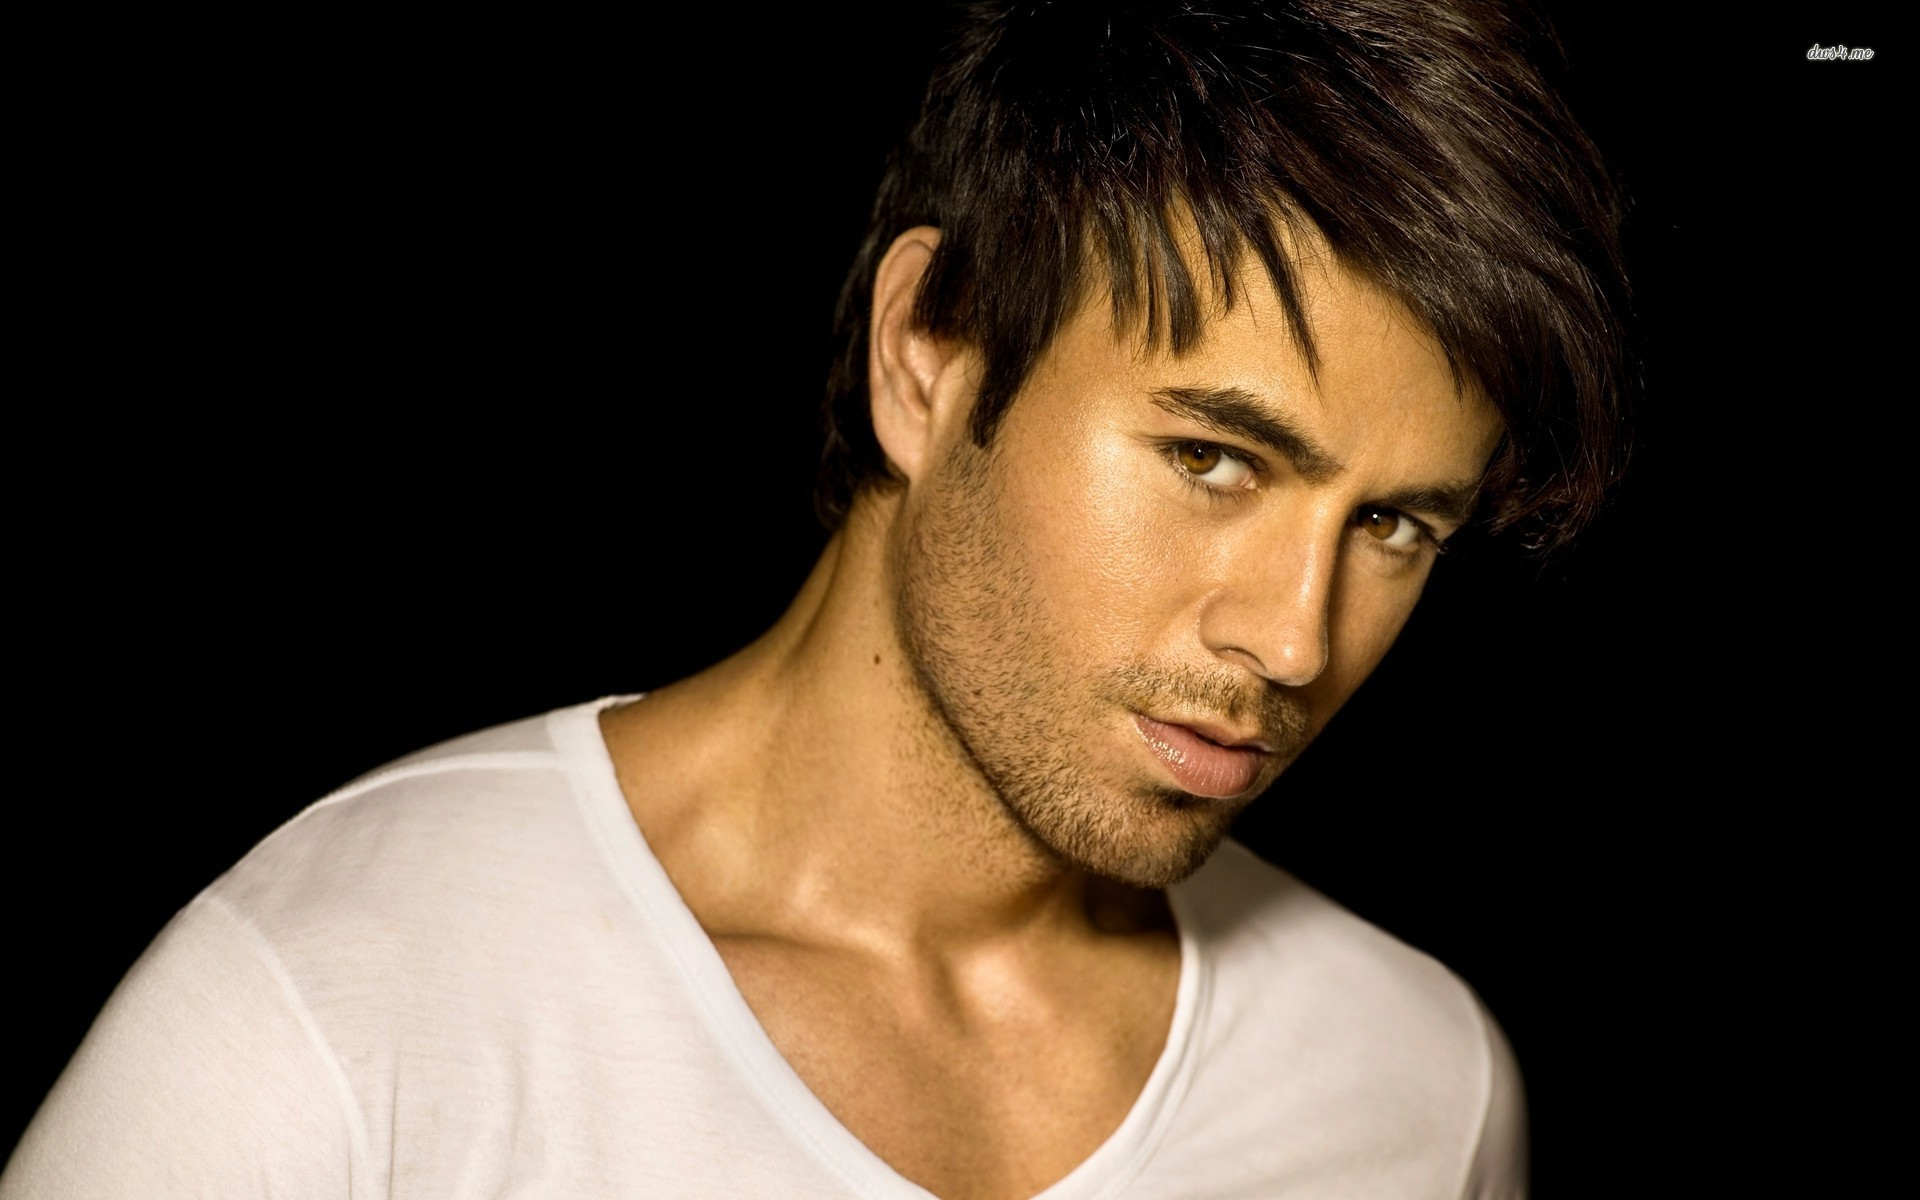 Enrique Iglesias Singer Hot Hd Wallpapers - All Hd Wallpapers-1914